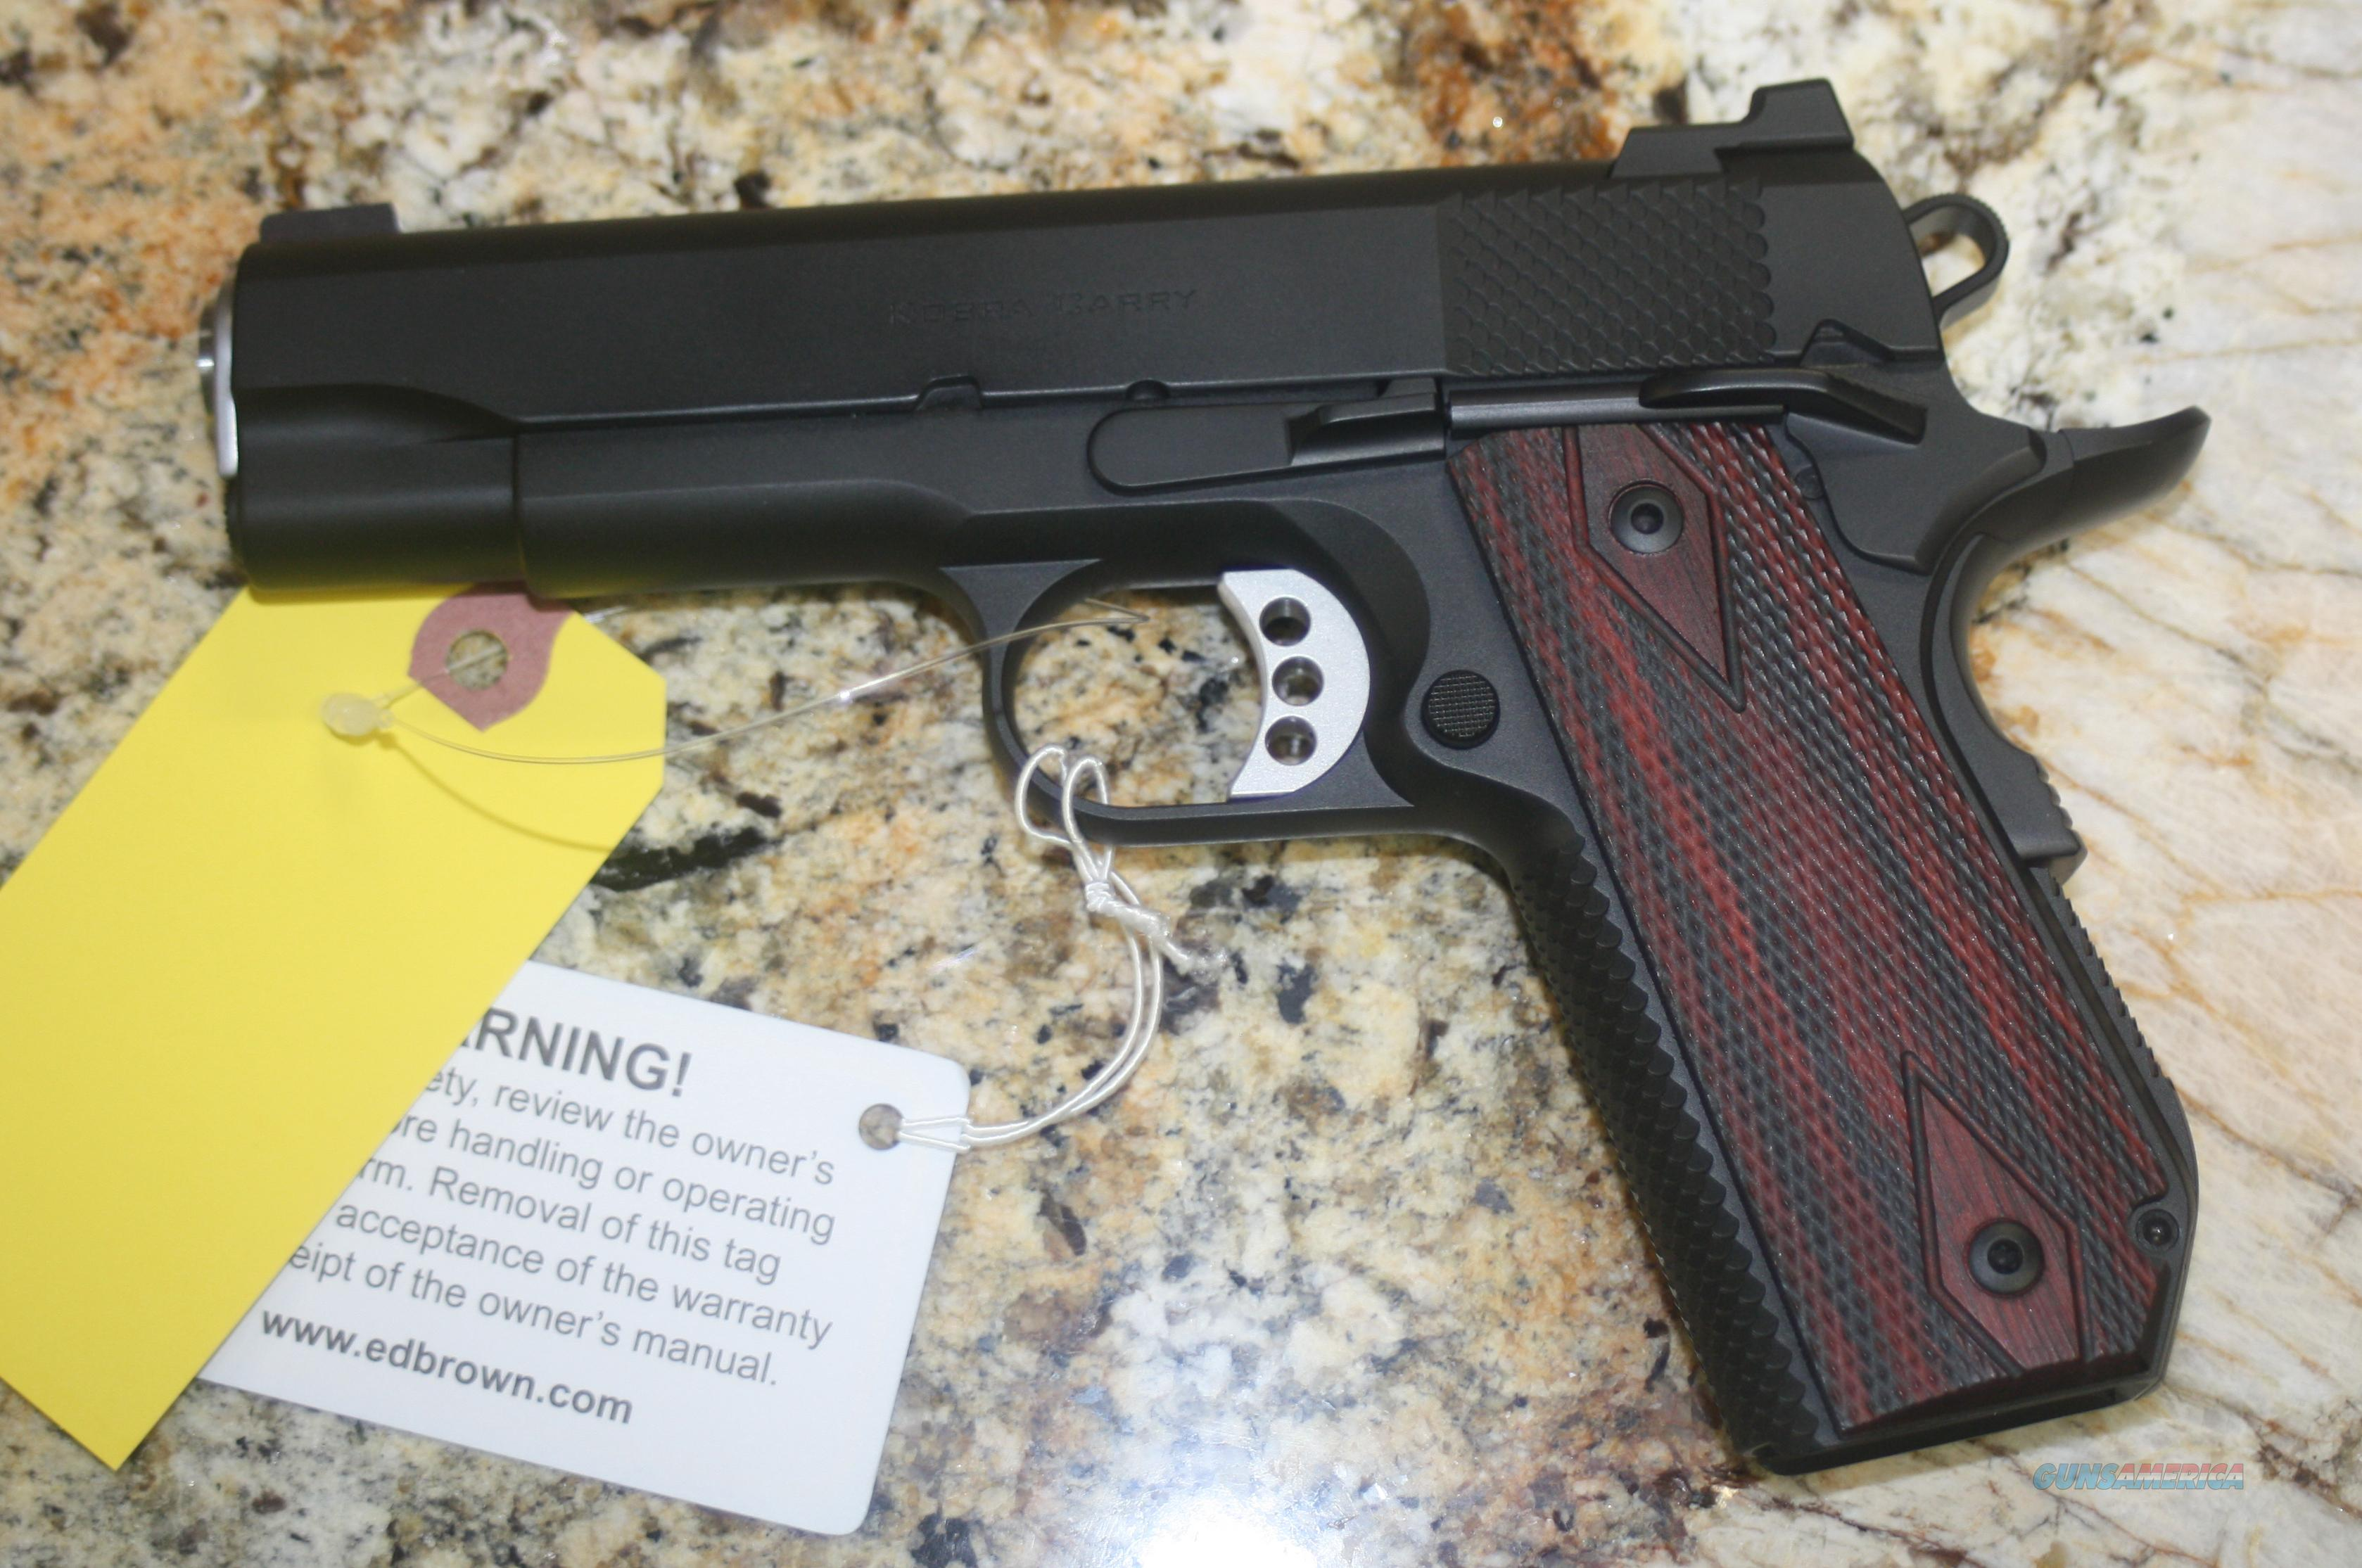 ED BROWN KOBRA CARRY LIGHTWEIGHT  Guns > Pistols > Kimber of America Pistols